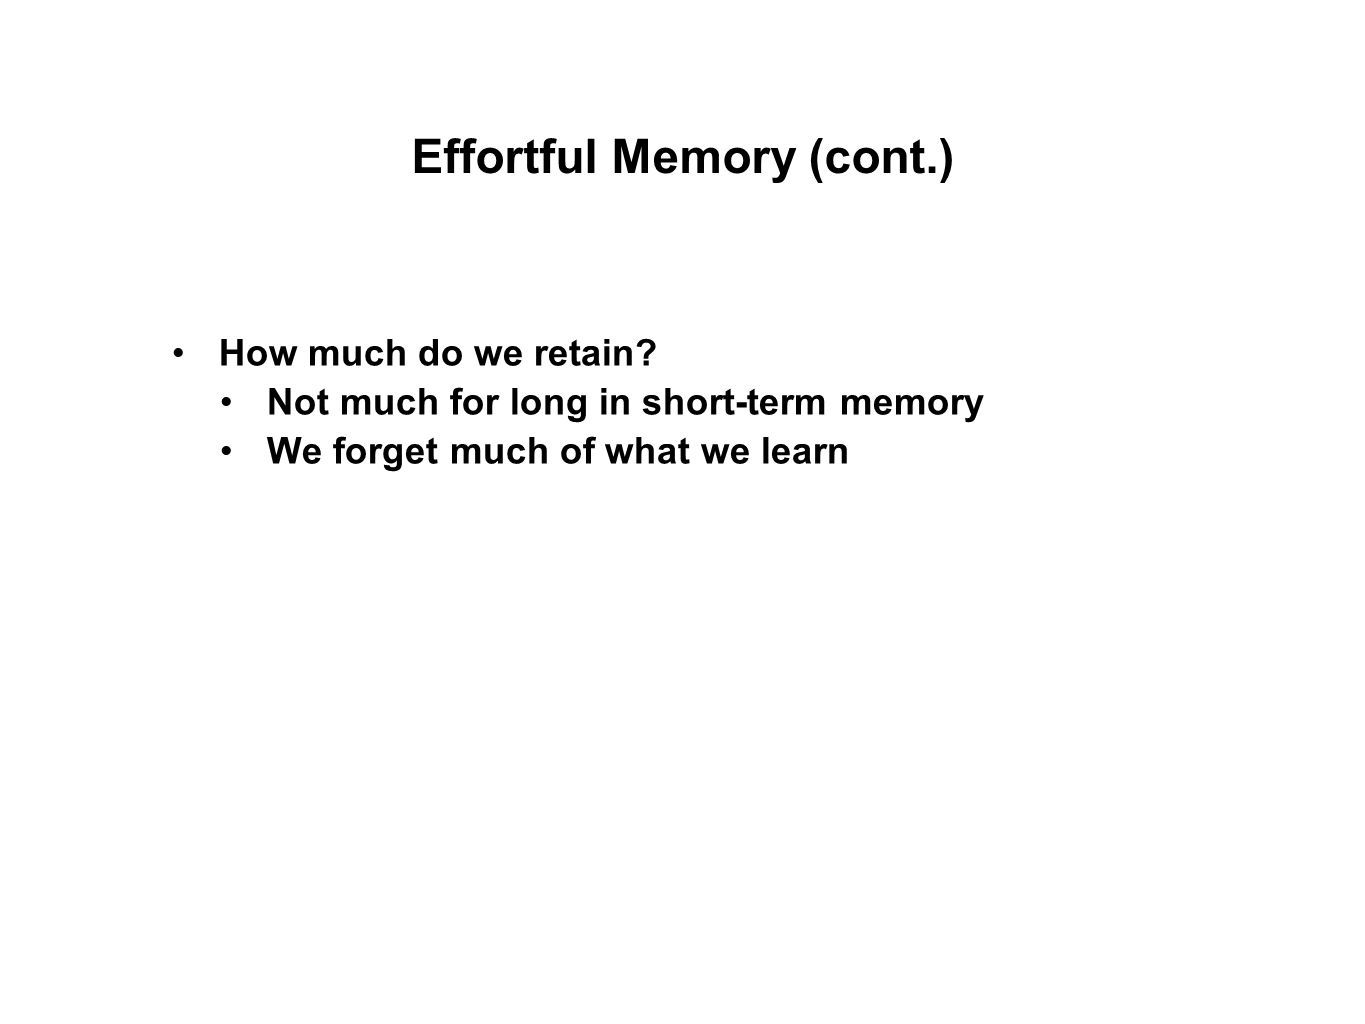 How much do we retain? Not much for long in short-term memory We forget much of what we learn Effortful Memory (cont.)